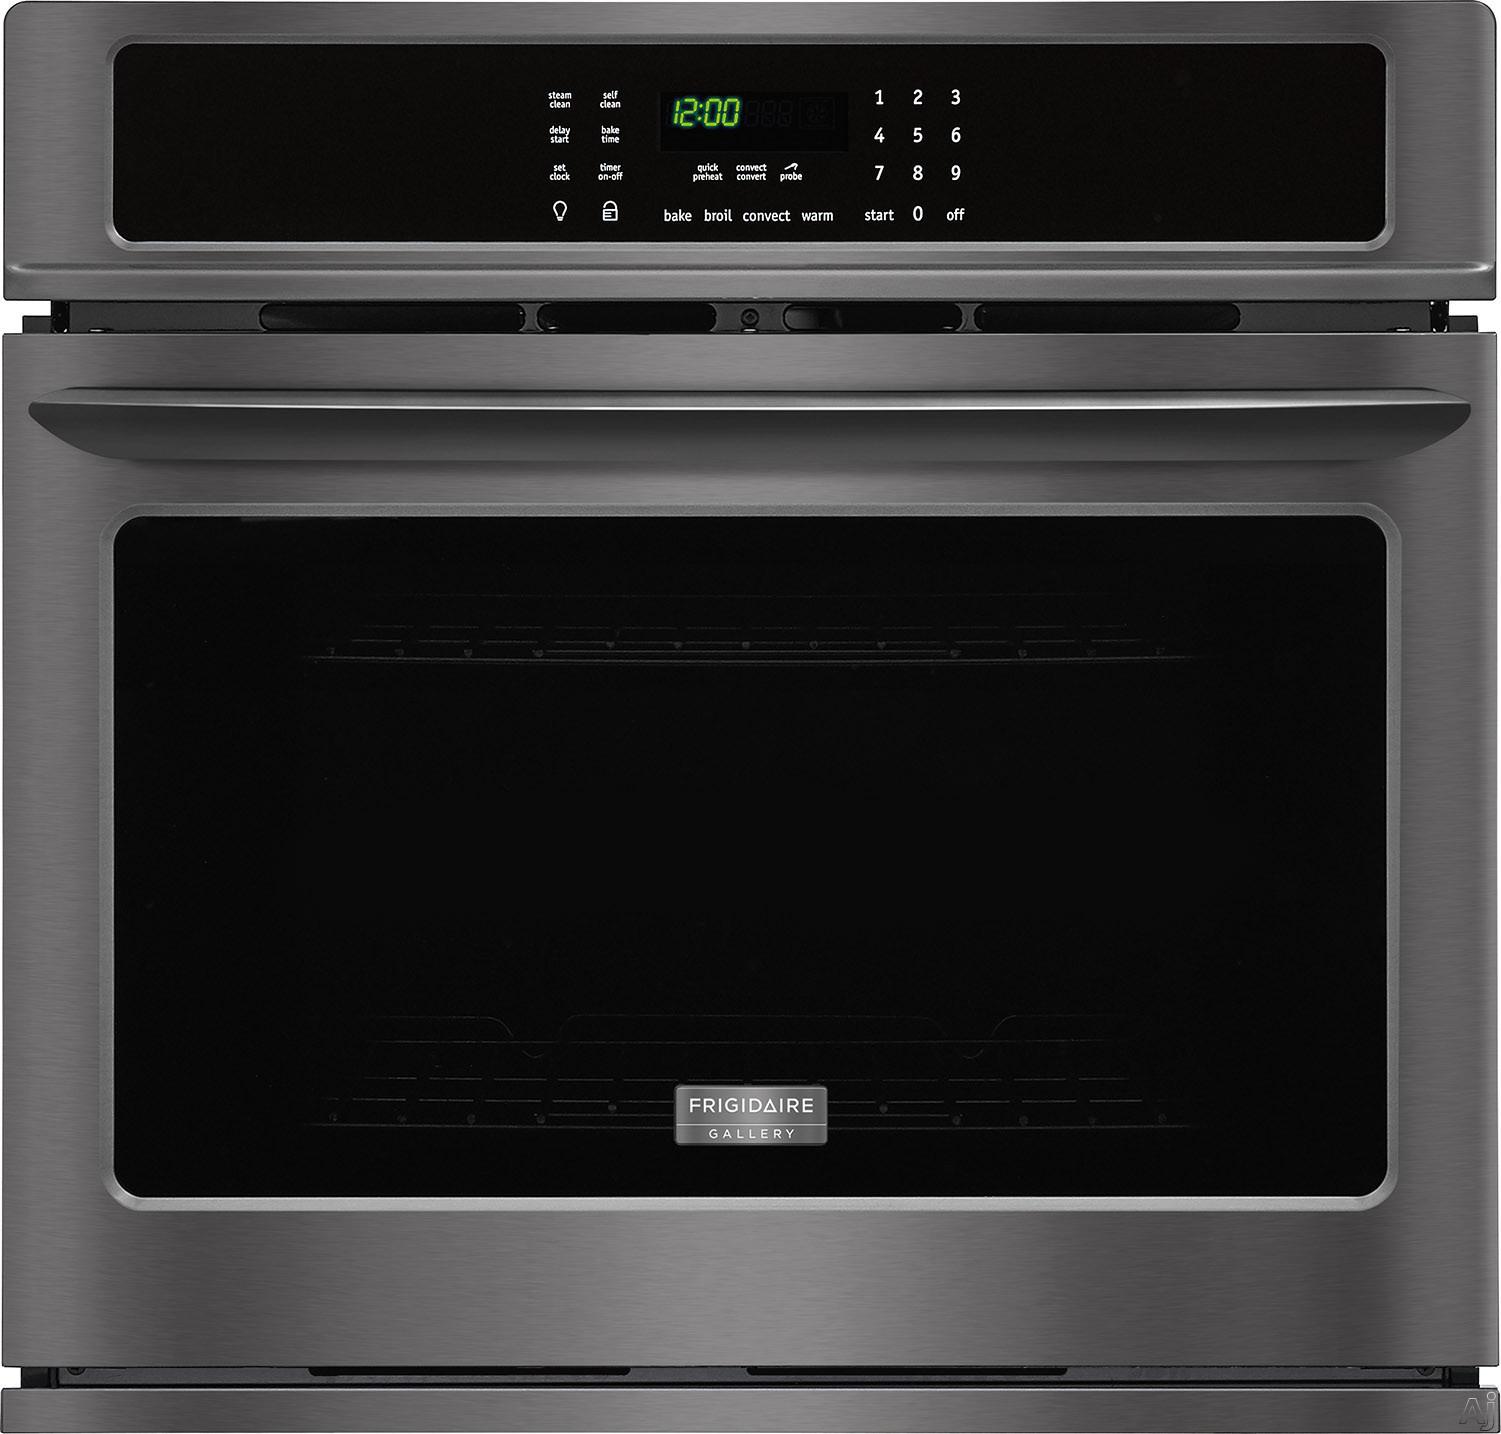 "Frigidaire Gallery Series FGEW3065PD 30 Inch Single Electric Wall Oven with True Convection, Quick Preheat, Effortlessâ""¢ Convection, Delay Start, One-Touch Keep Warm, Auto Shut-Off, Temperature P"